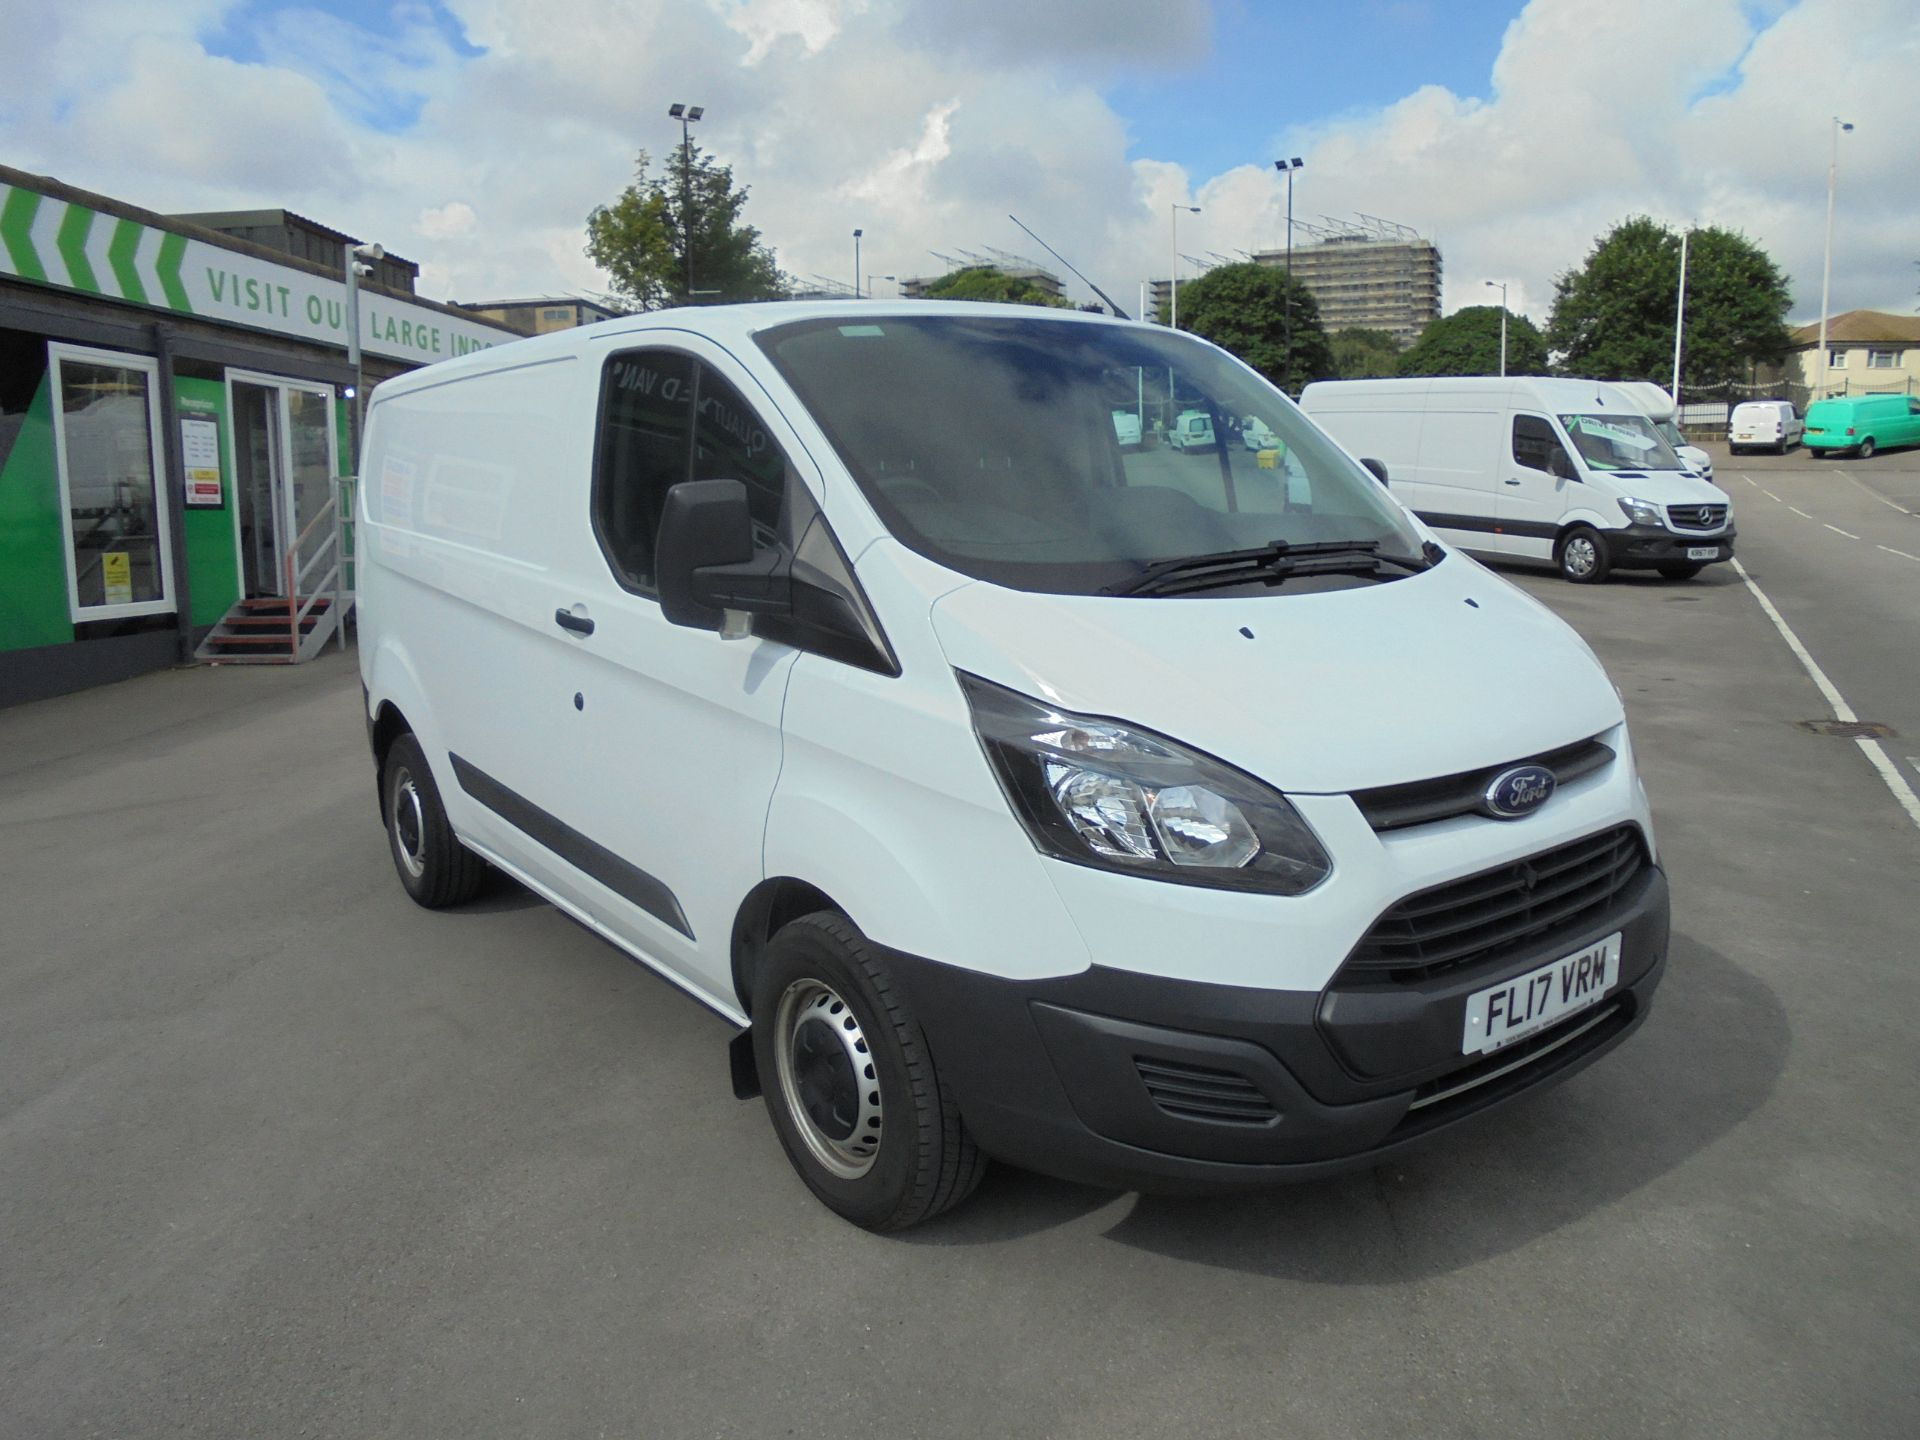 2017 Ford Transit Custom 2.0 Tdci 105Ps Low Roof Van VALUE RANGE VEHICLE CONDITION REFLECTED IN PRICE* (FL17VRM) Image 1